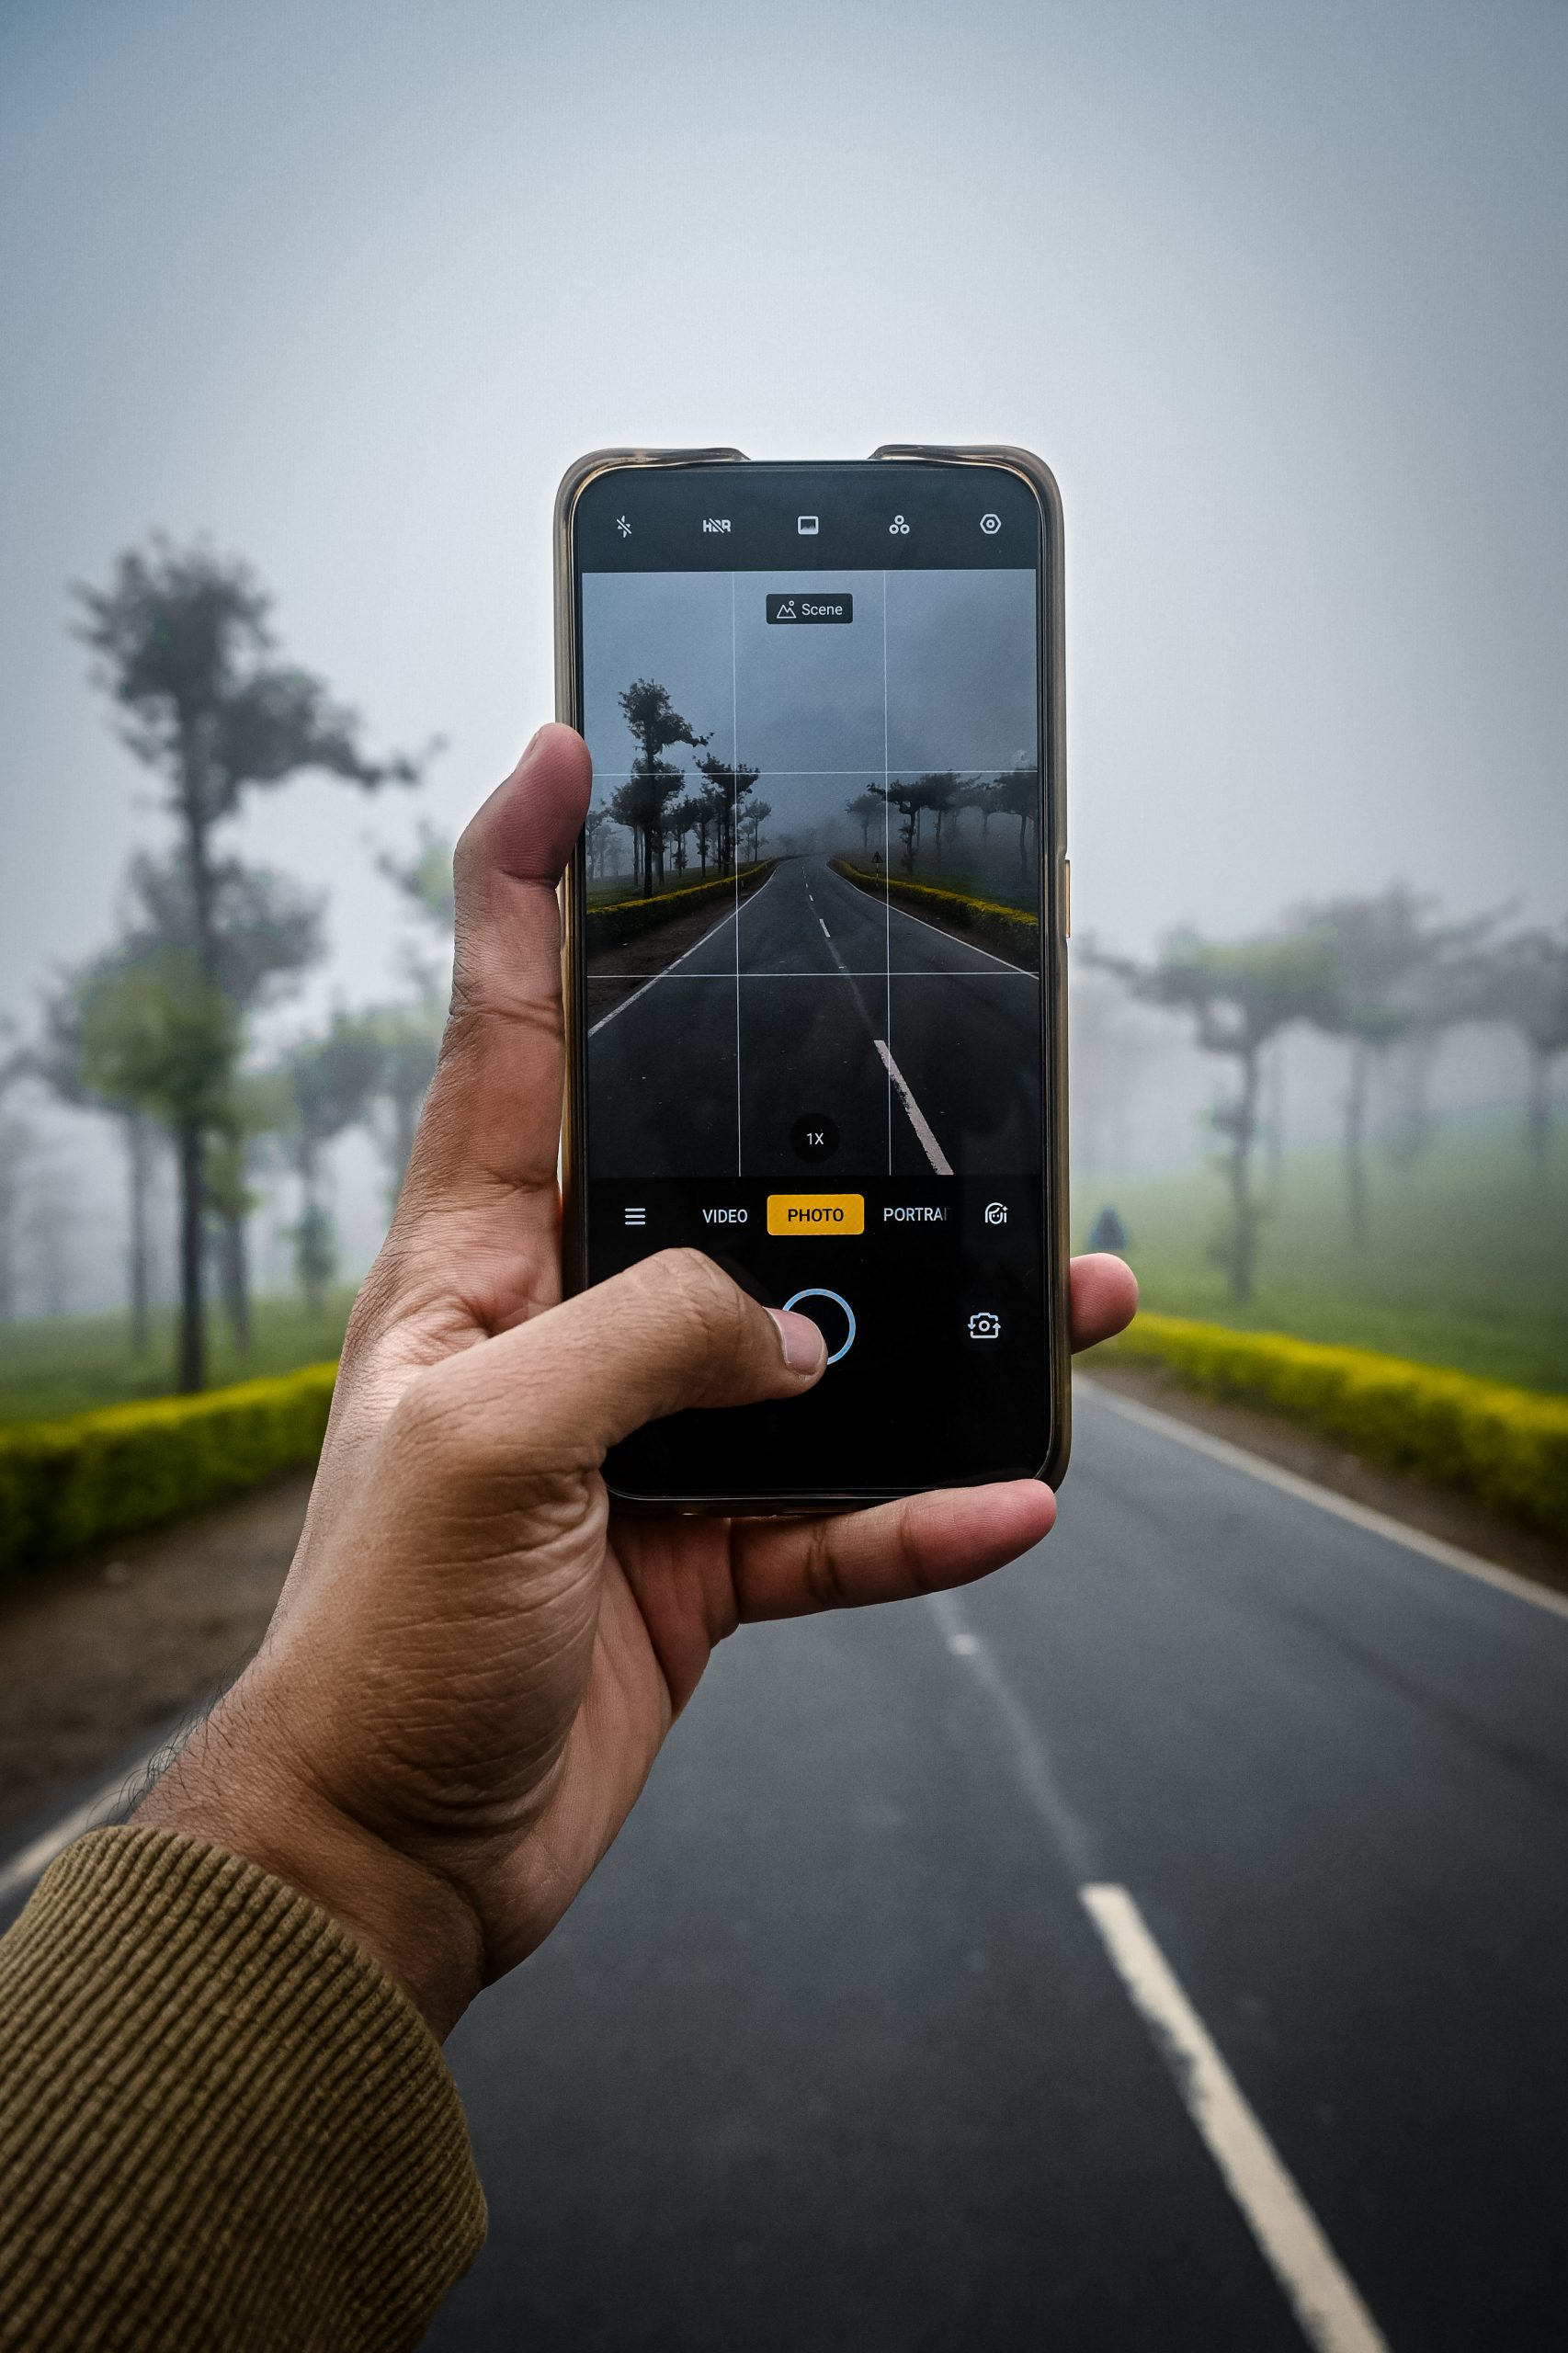 Taking picture with mobile camera